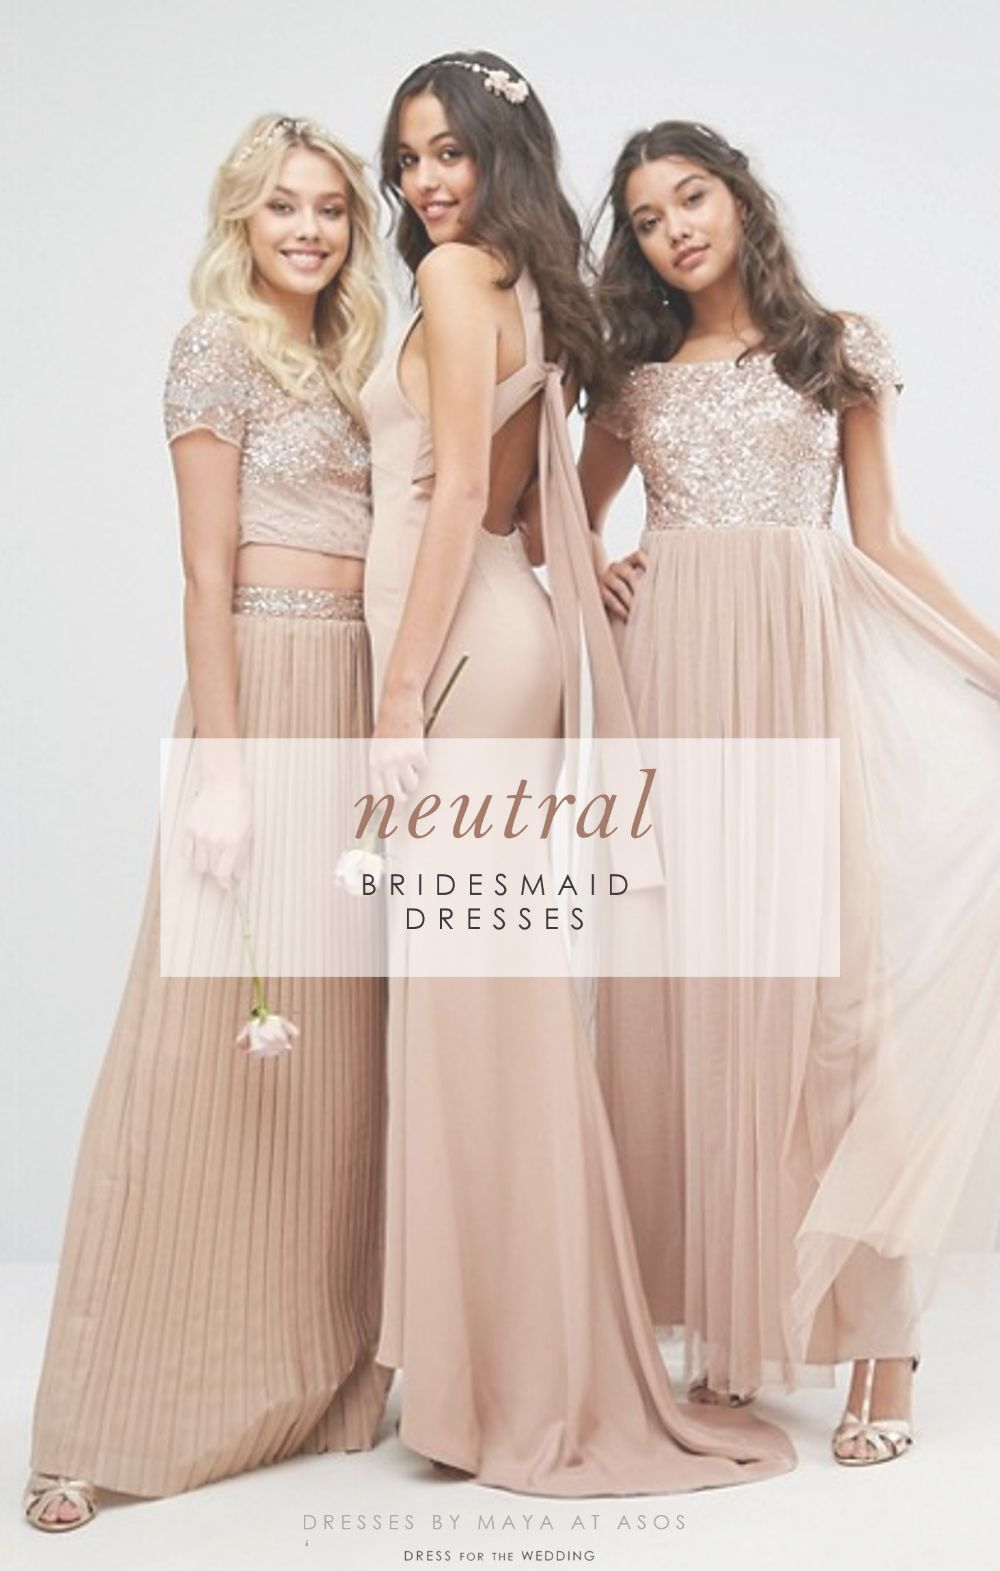 Neutral Bridesmaid Dresses Are Elegant And A Very Por Wedding Style The Prettiest Bridesmaids